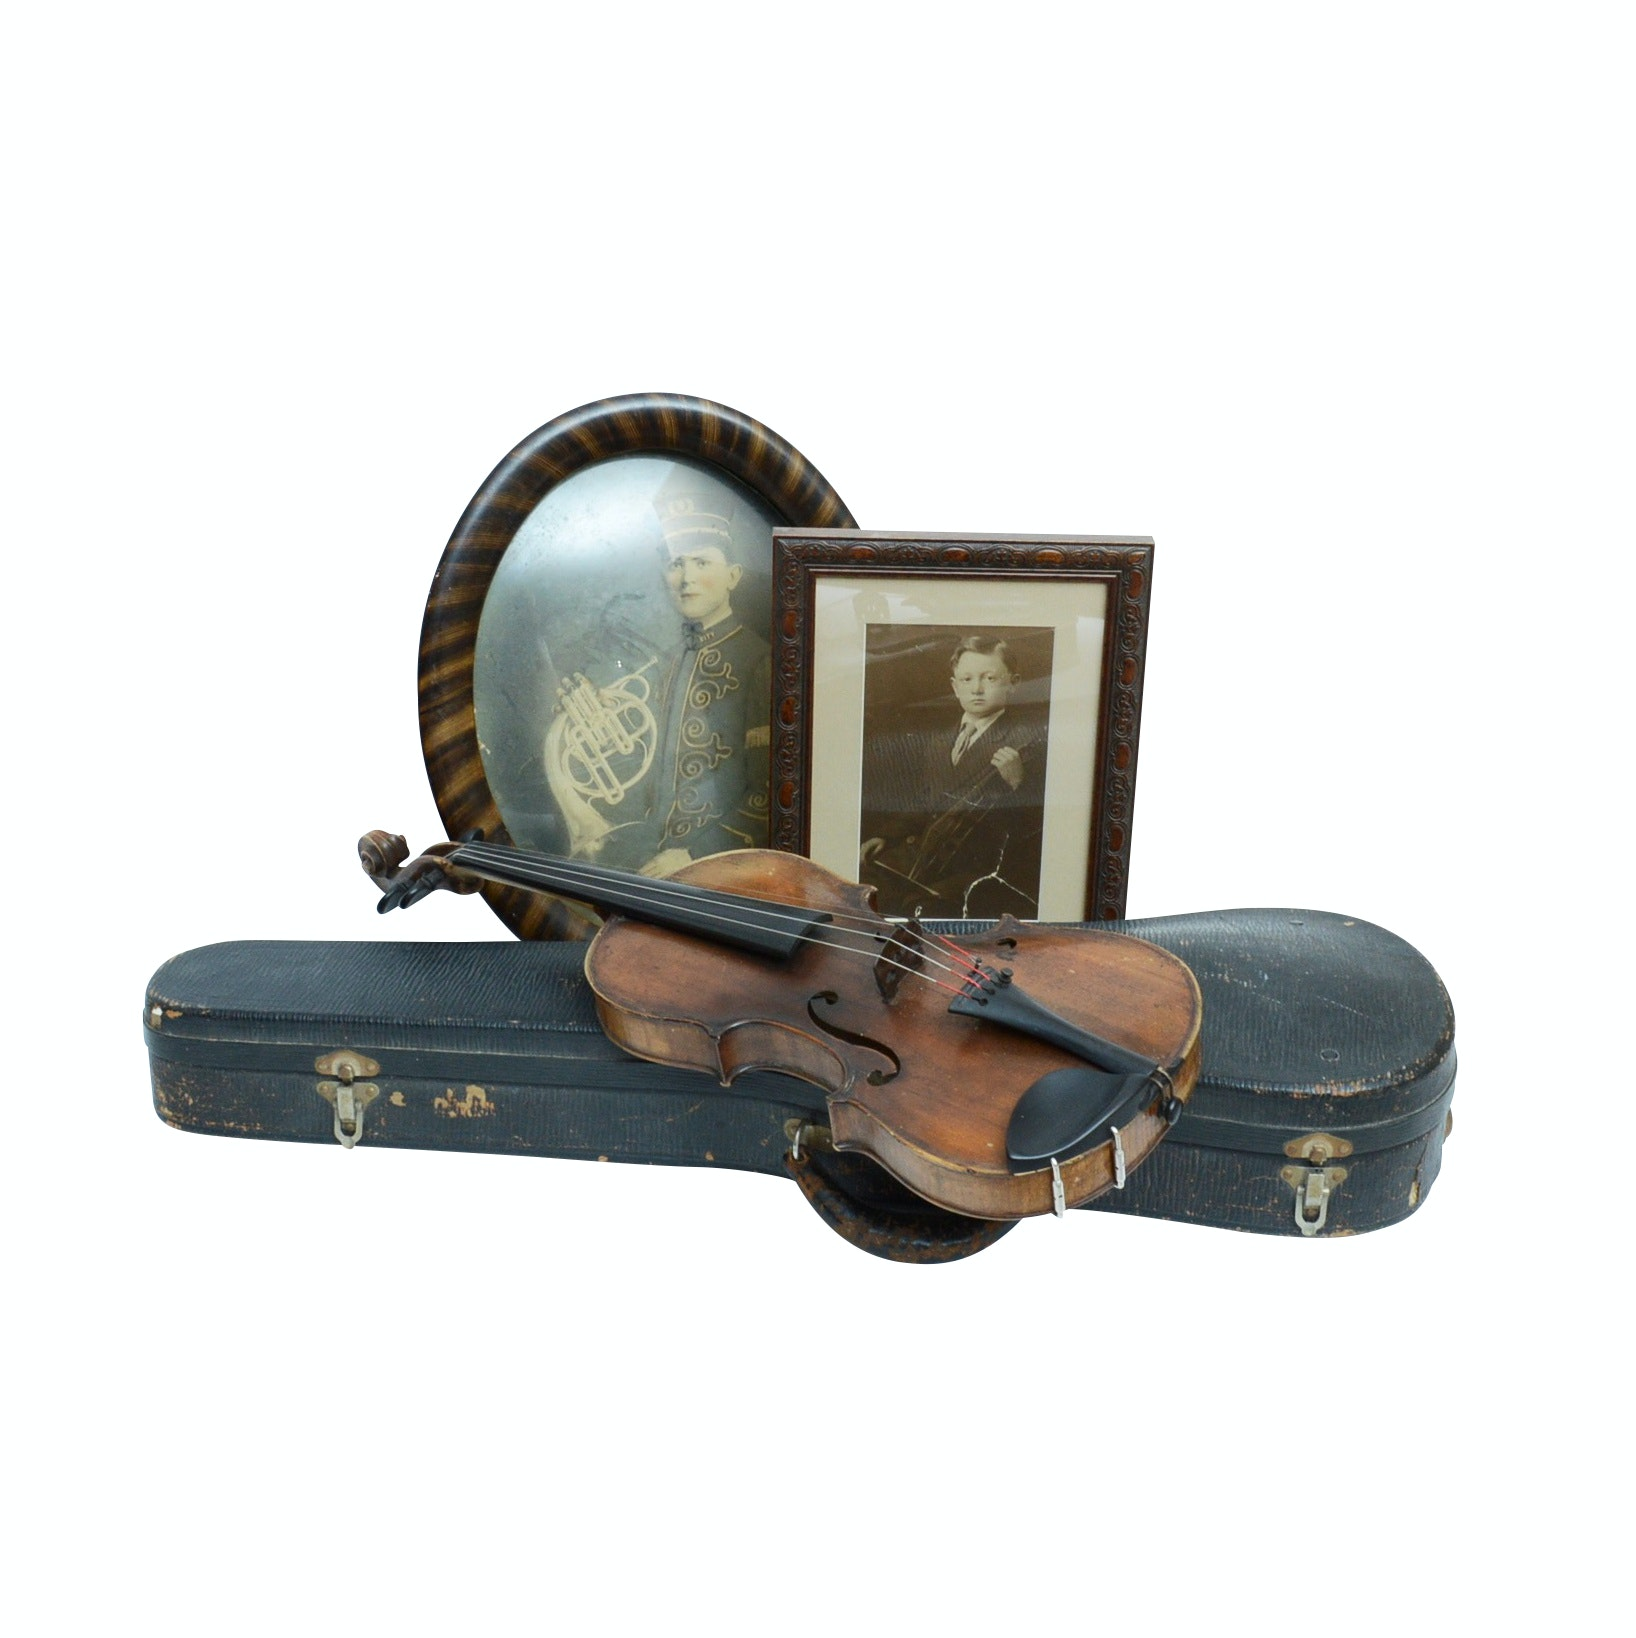 Violin with Early Photo of Original Owner